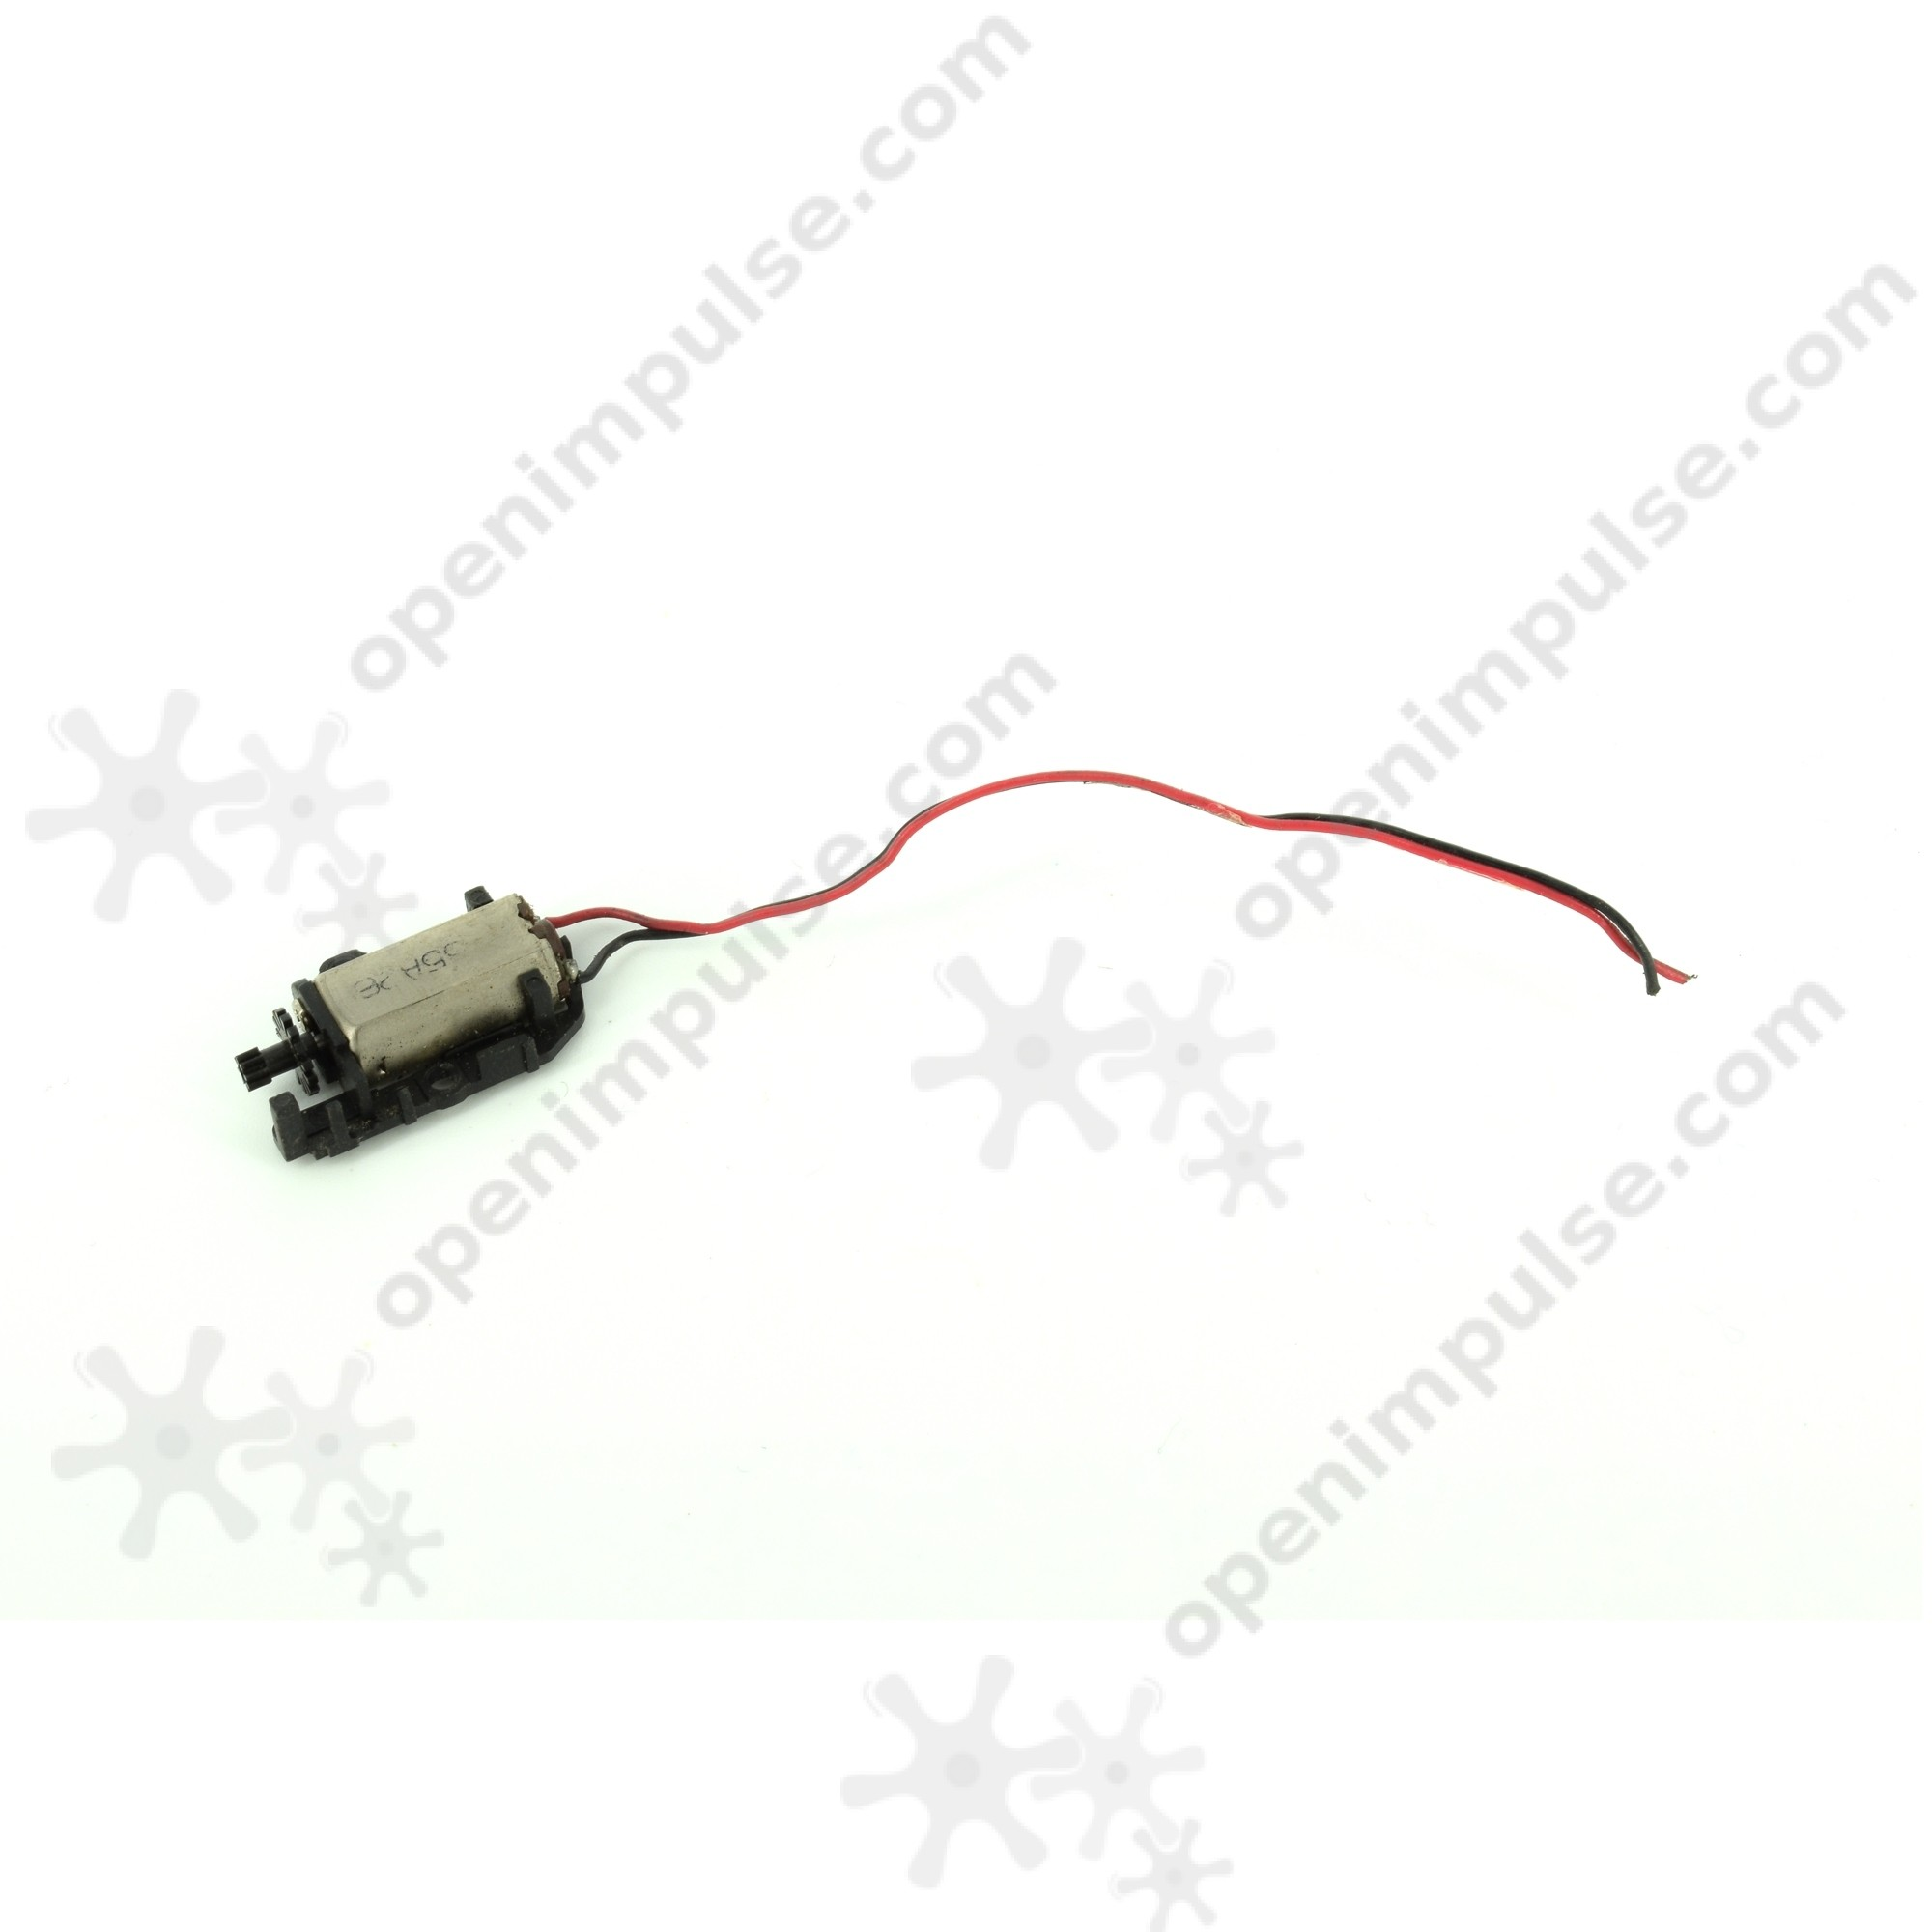 5pcs Ka15 Motor With Gear